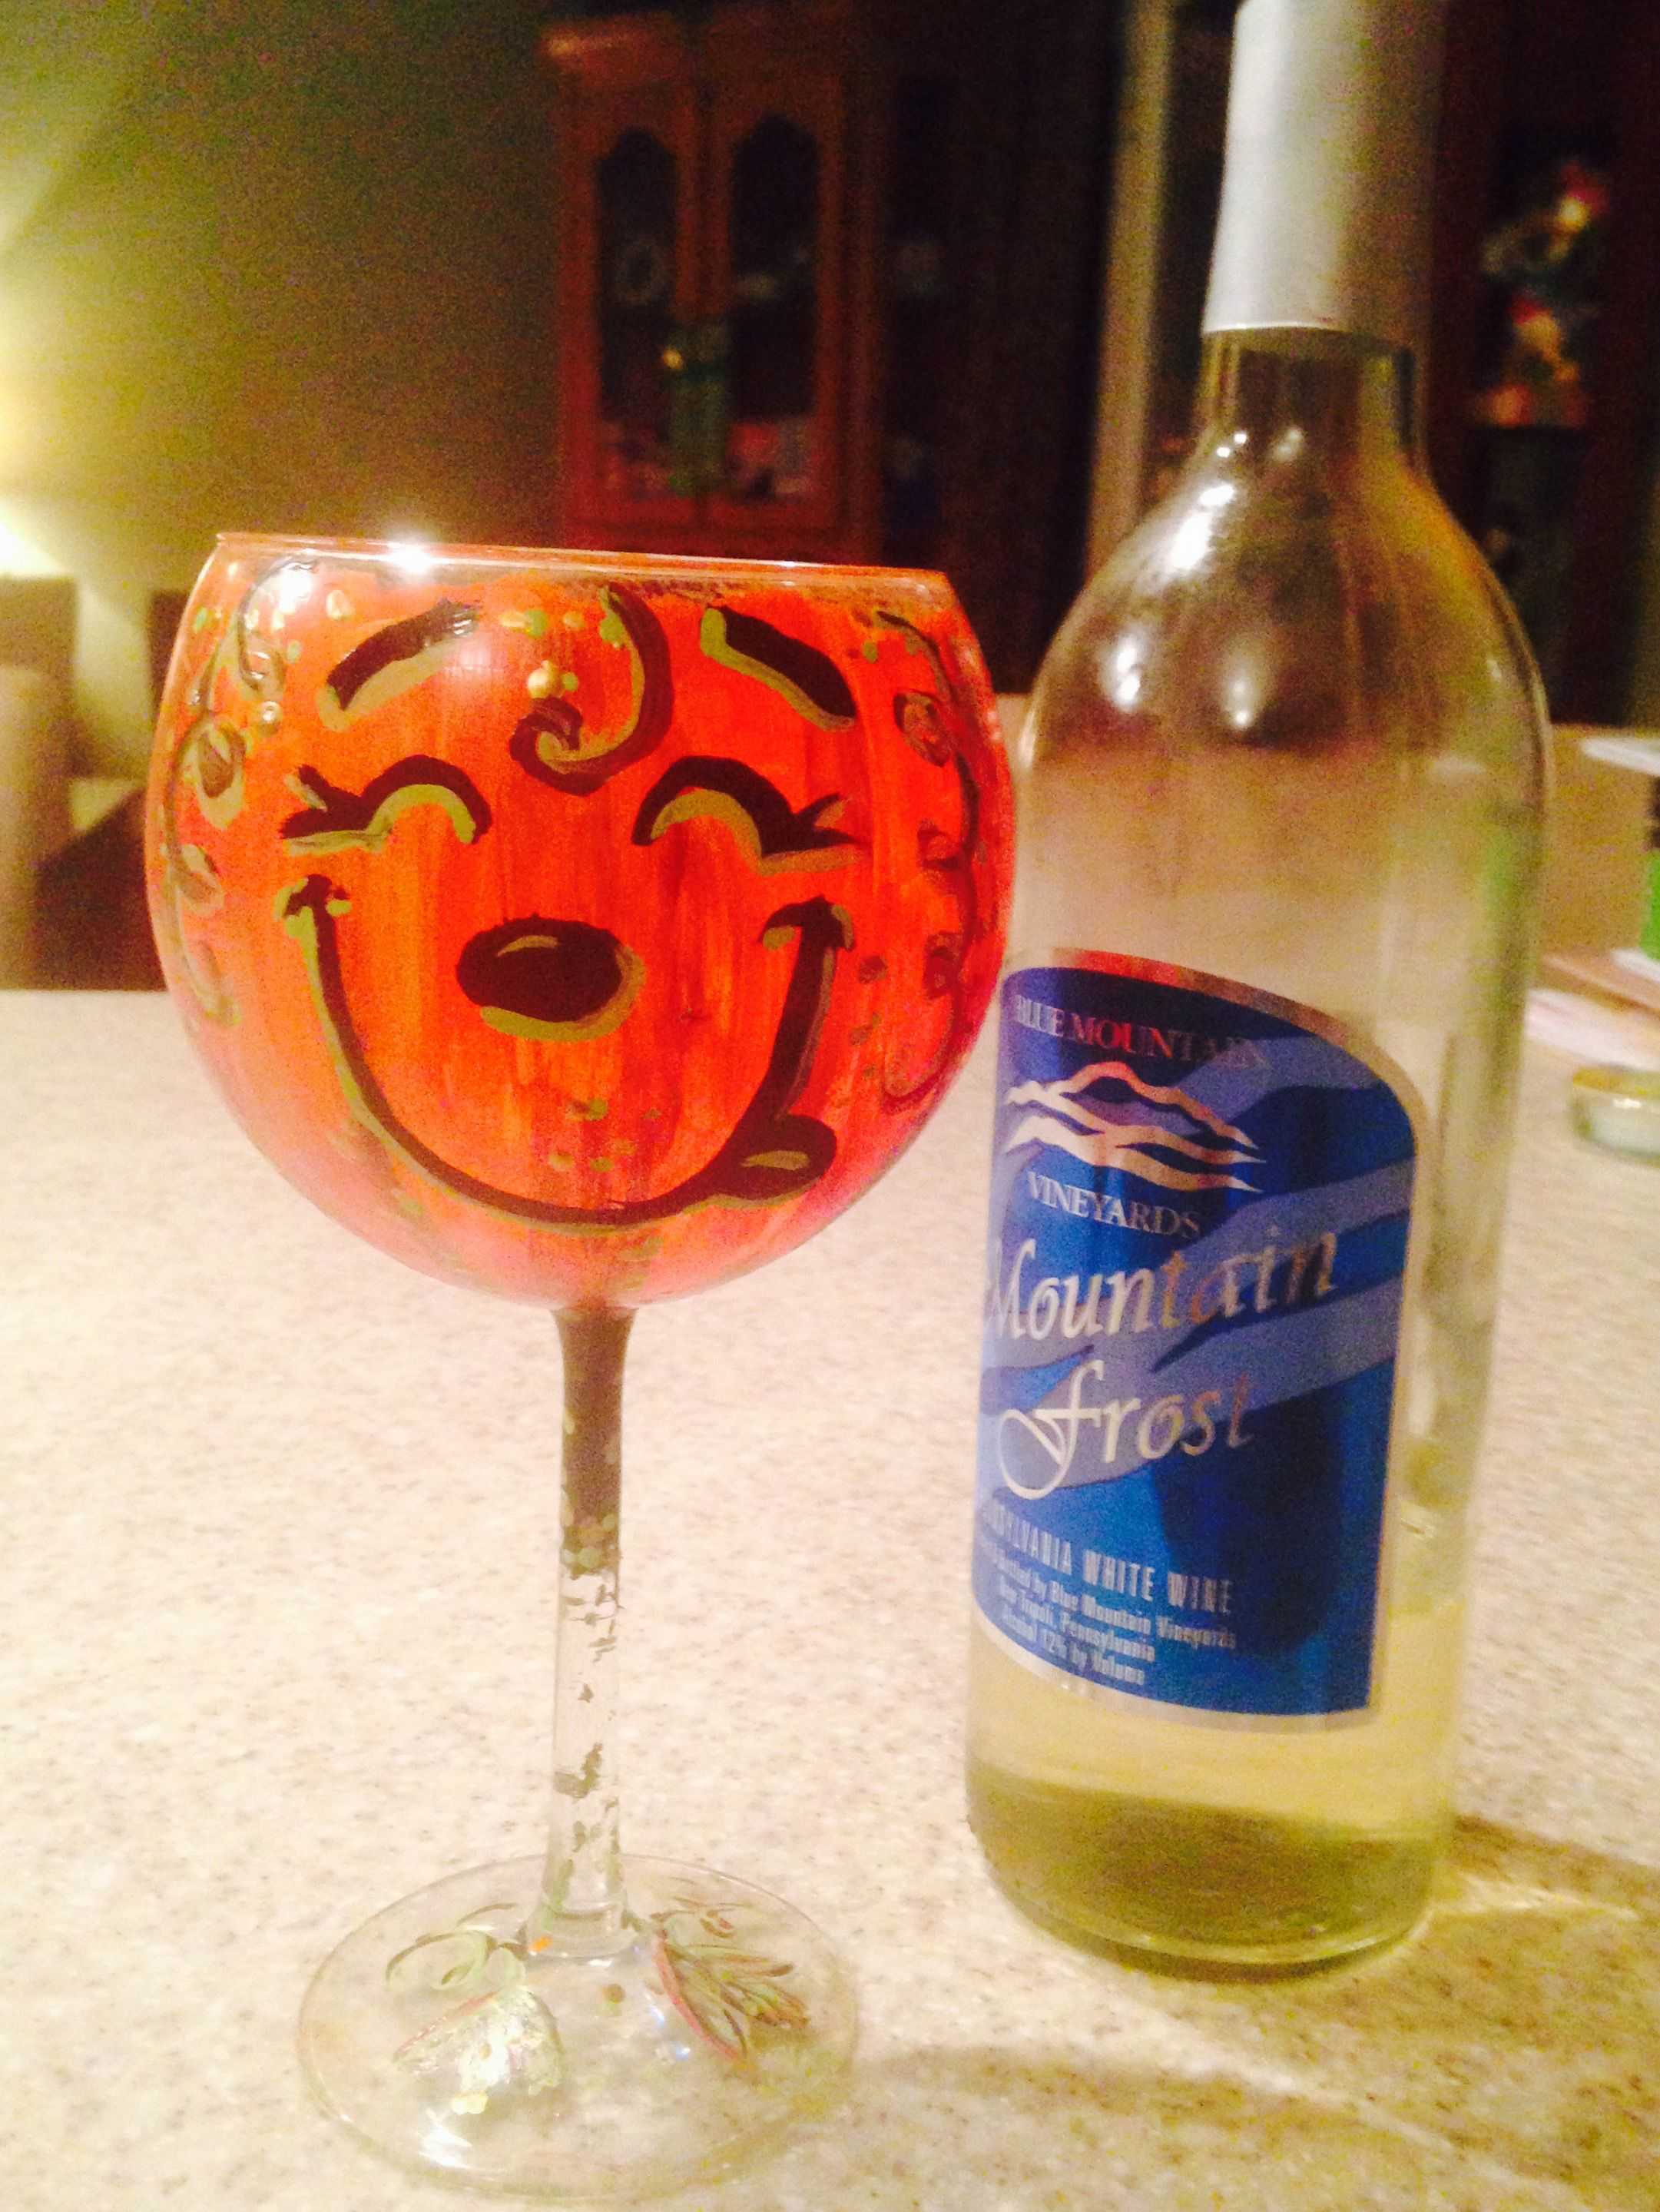 Hand-painted wine goblet from Paint-N-Sip party at Blue Mountain Vineyards, PA. Great idea for Halloween party with the ladies!